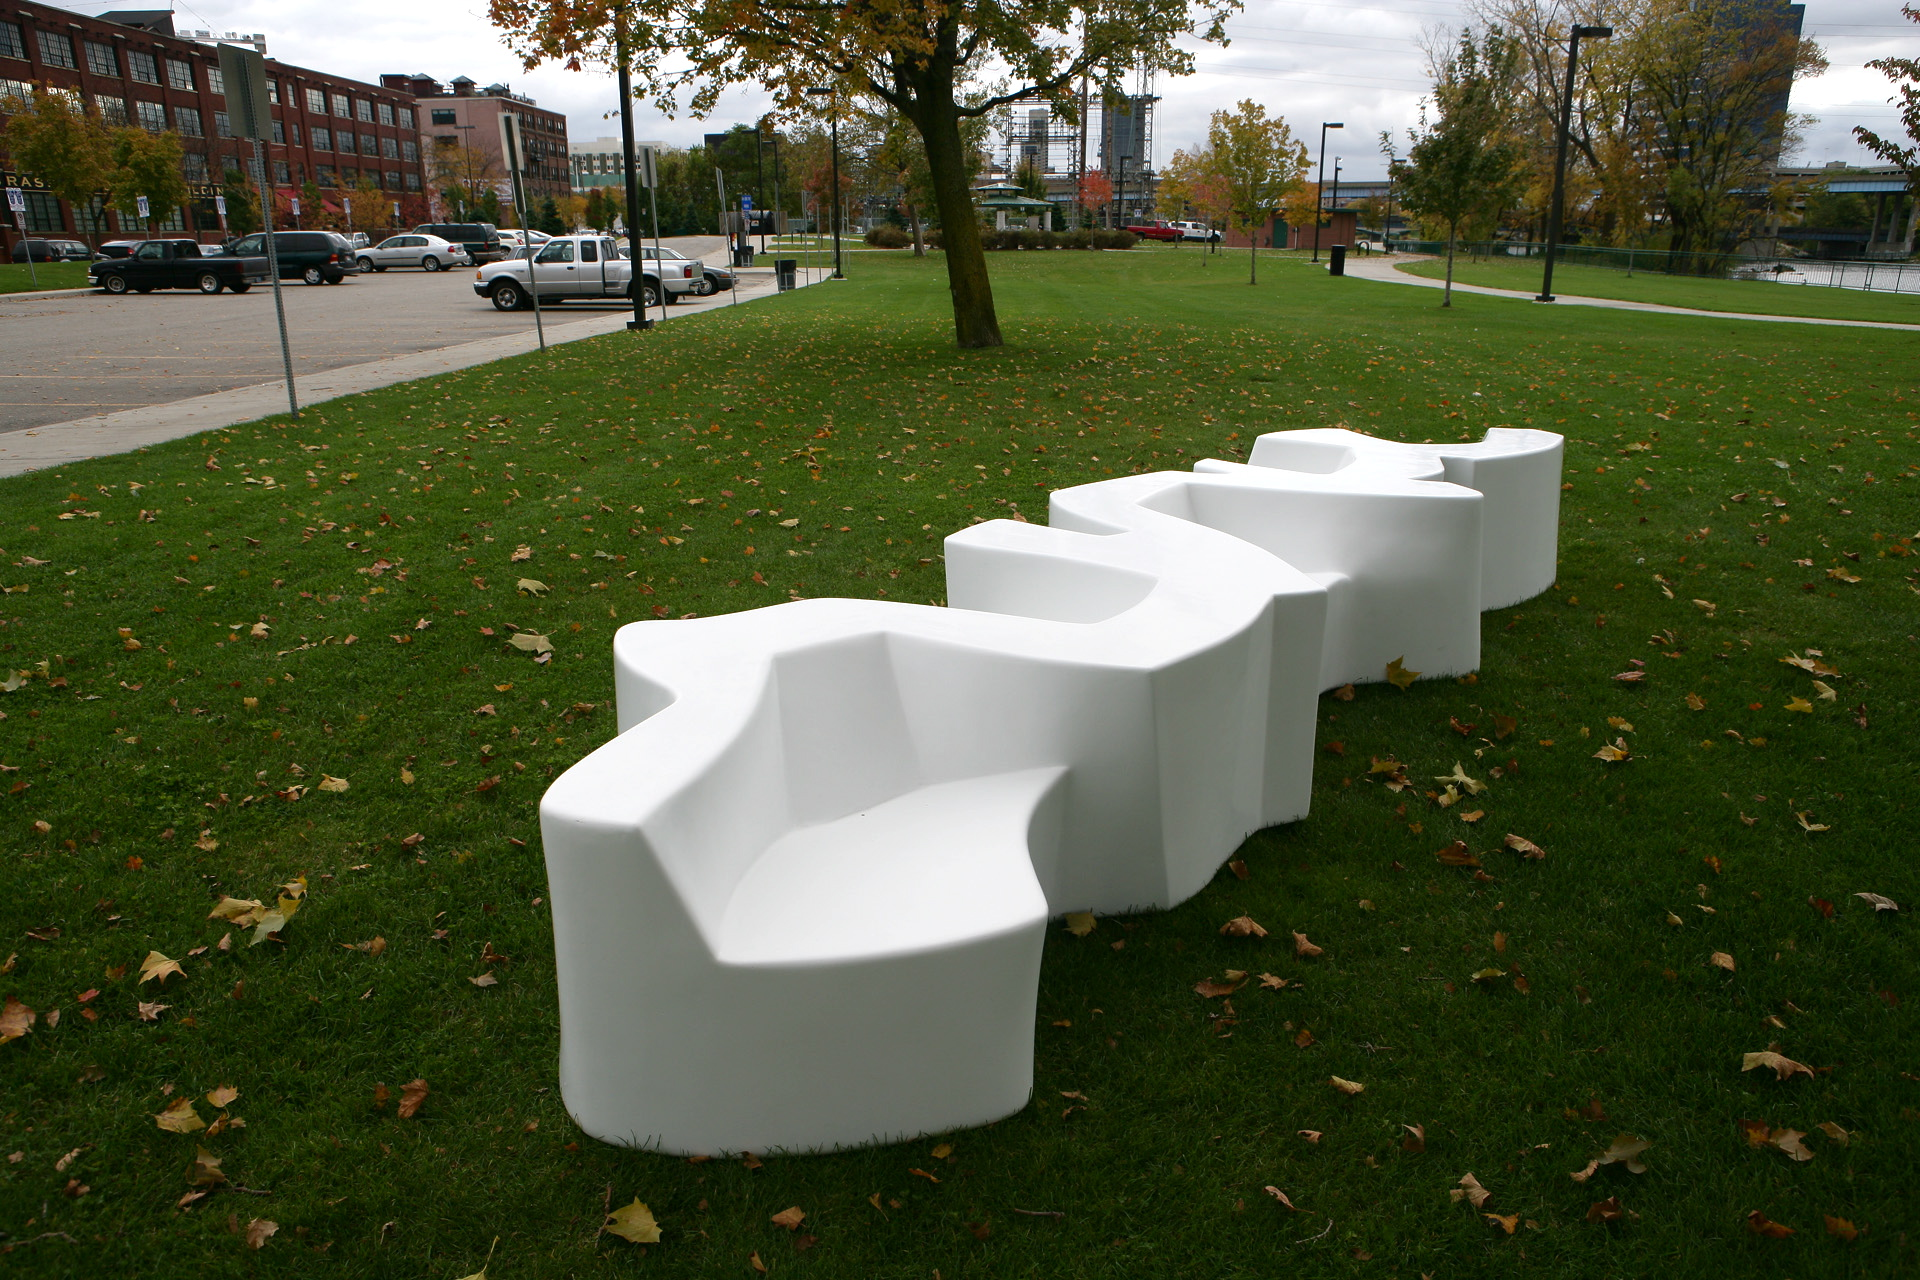 Public Furniture by Cameron Van Dyke at Coroflot.com